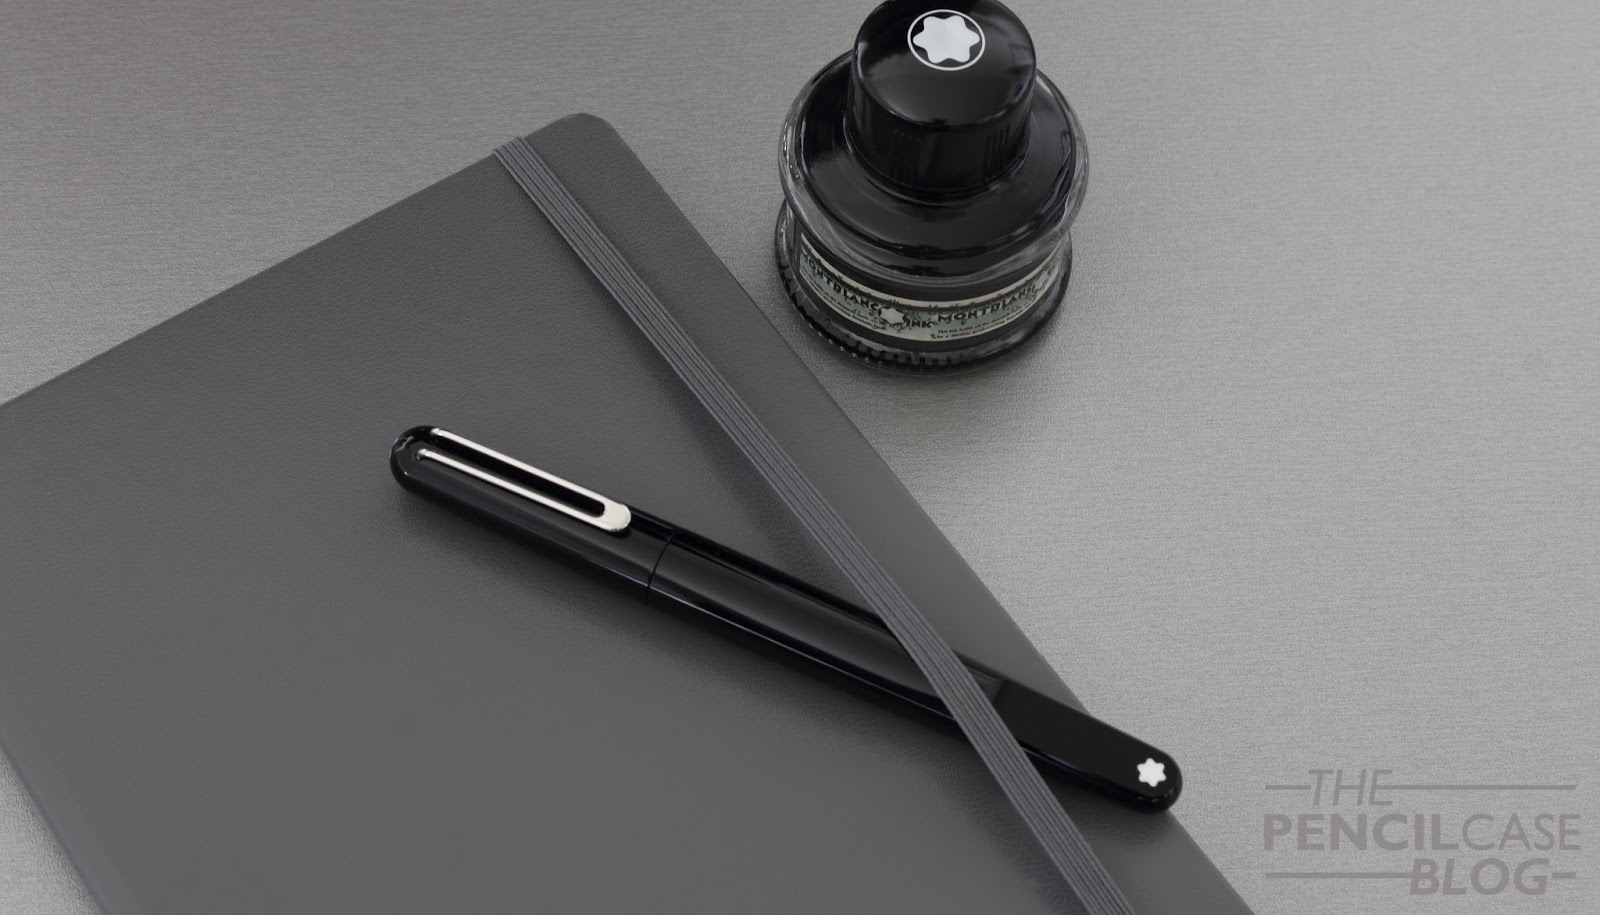 3c2f83dee6911 MONTBLANC M FOUNTAIN PEN REVIEW. Montblanc M